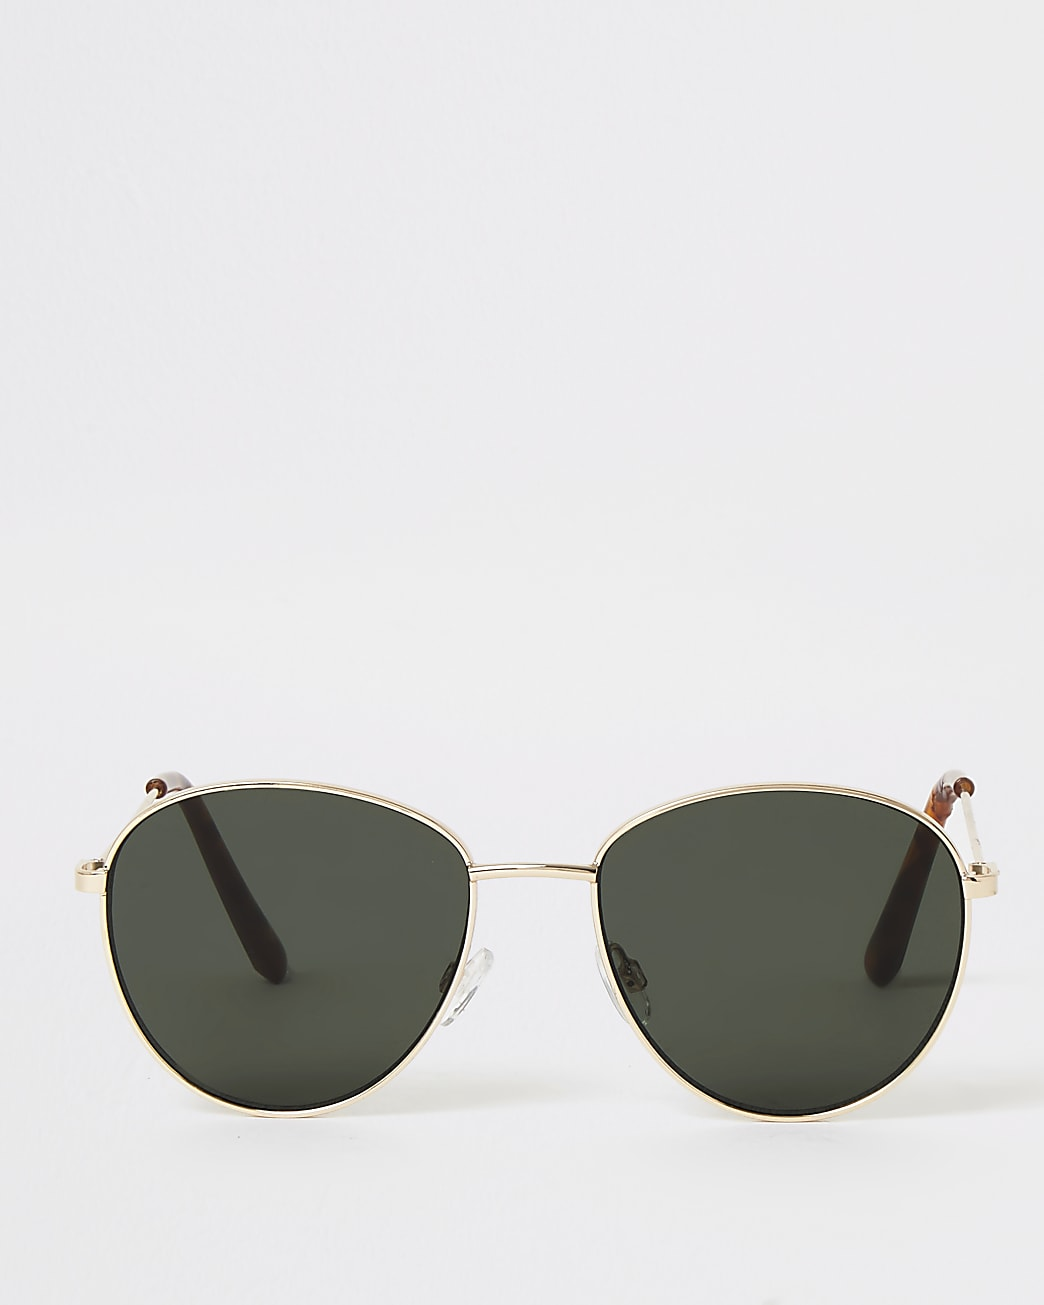 Gold round green tinted sunglasses